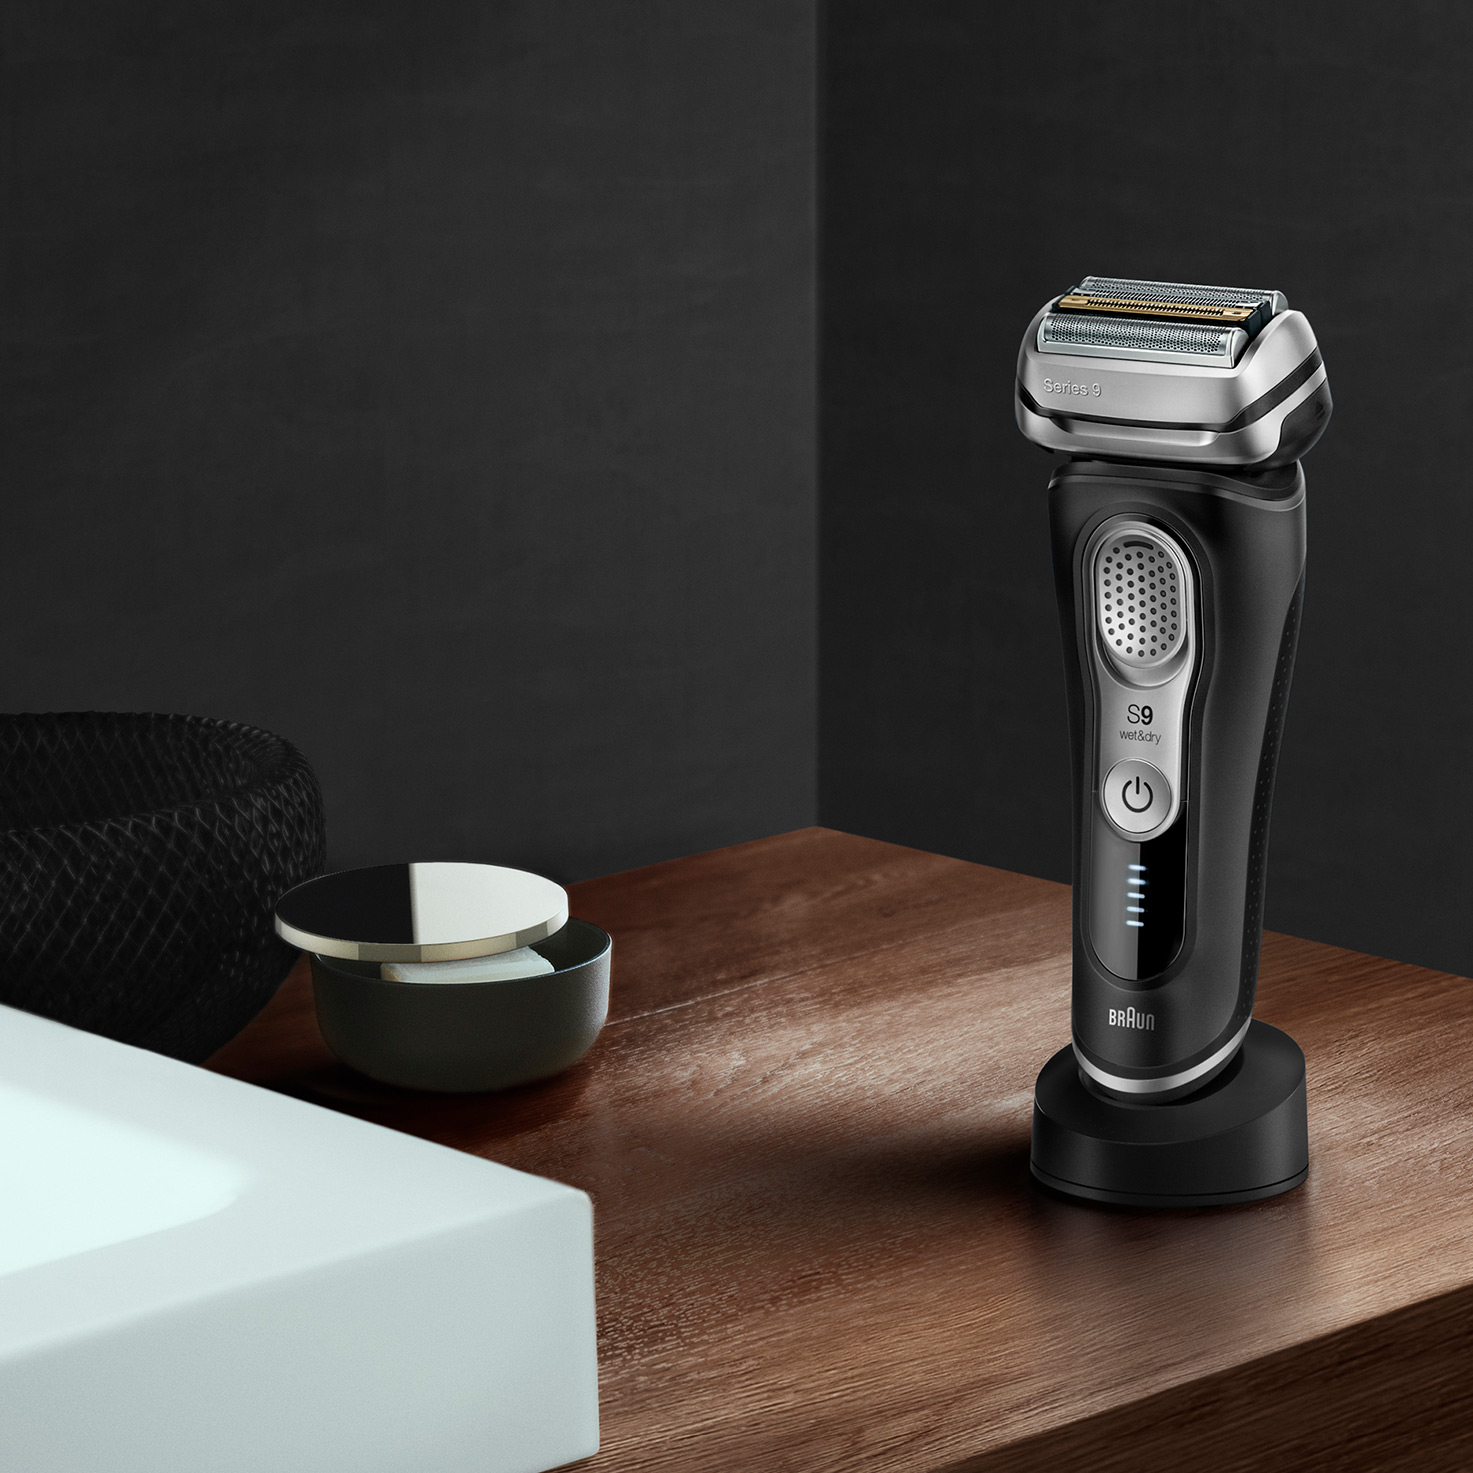 Series 9 9320s shaver in charging stand